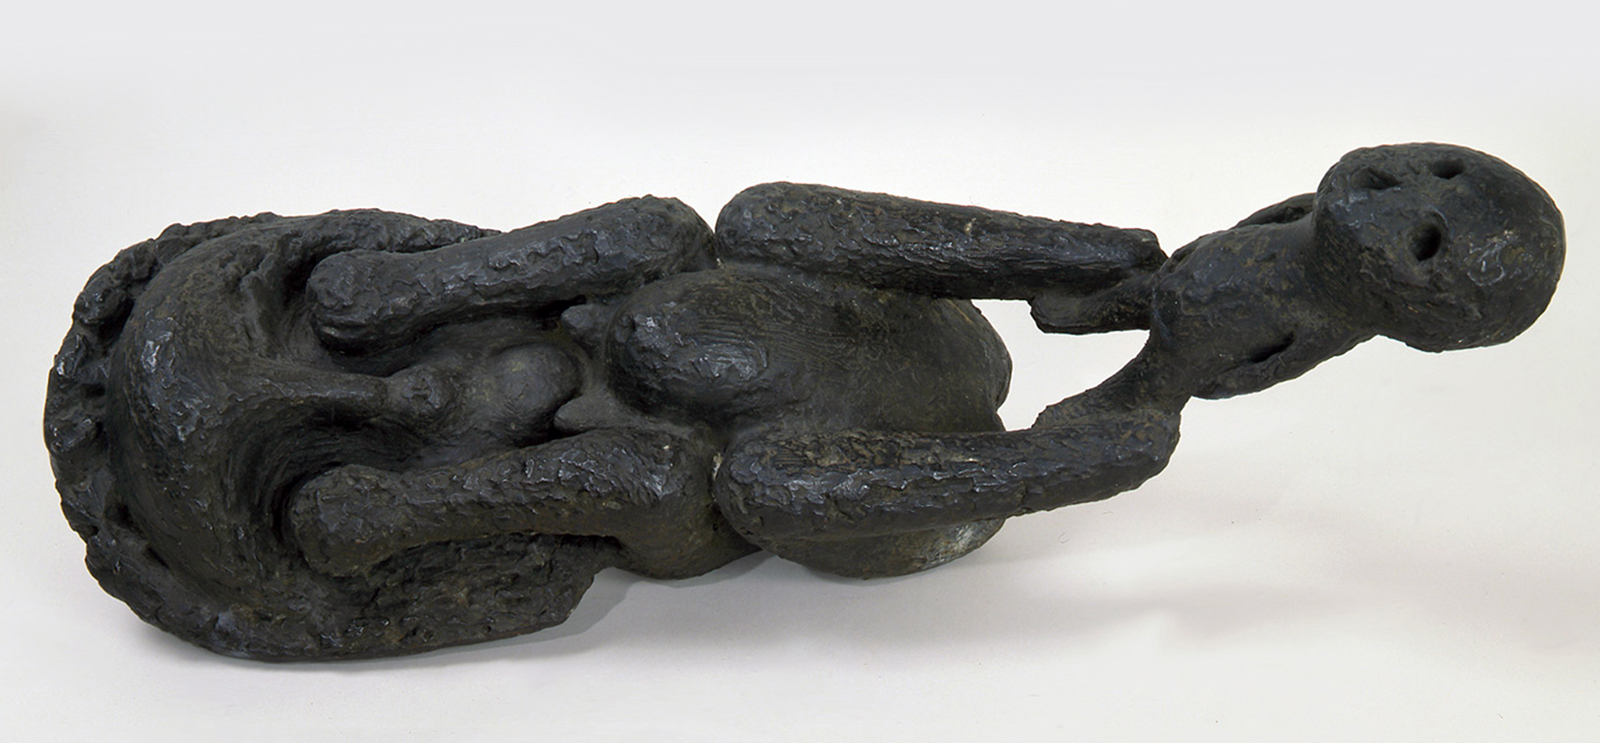 Cosmo Campoli, Birth of Death, 1950–1951, cast bronze